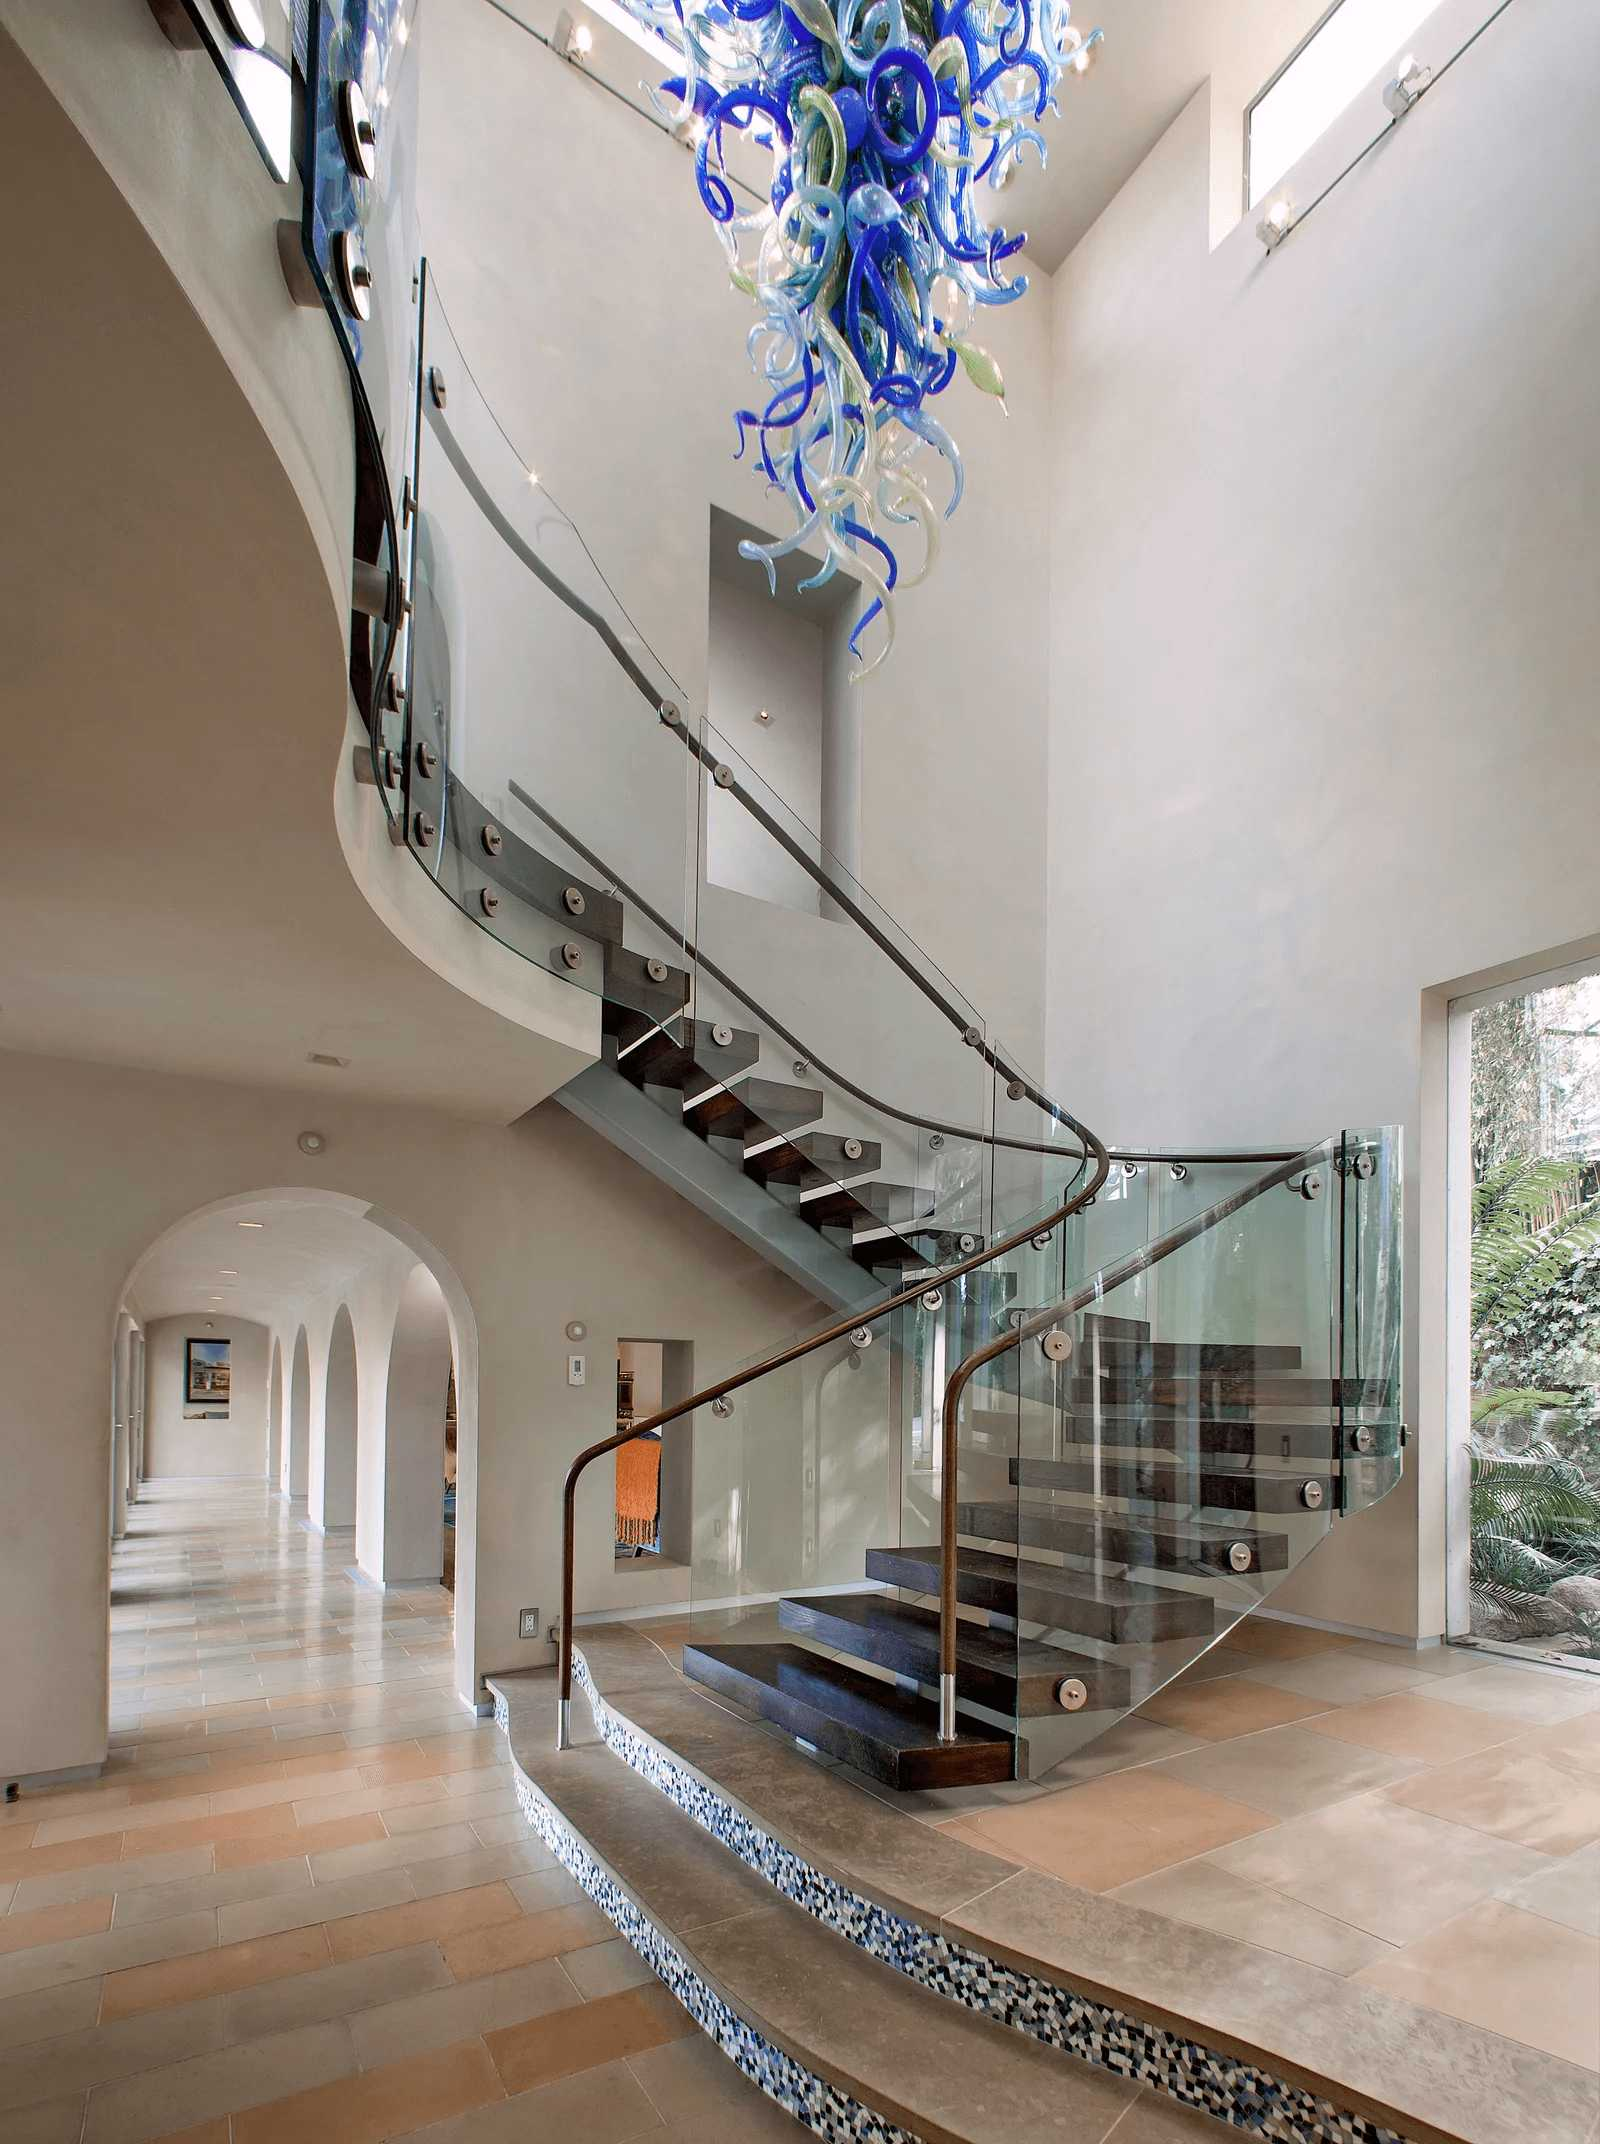 this-is-the-Bailey-House-a-look-into-the-curved-glass-staircase-from-inside-the-mid-century-modern-home-in-LA